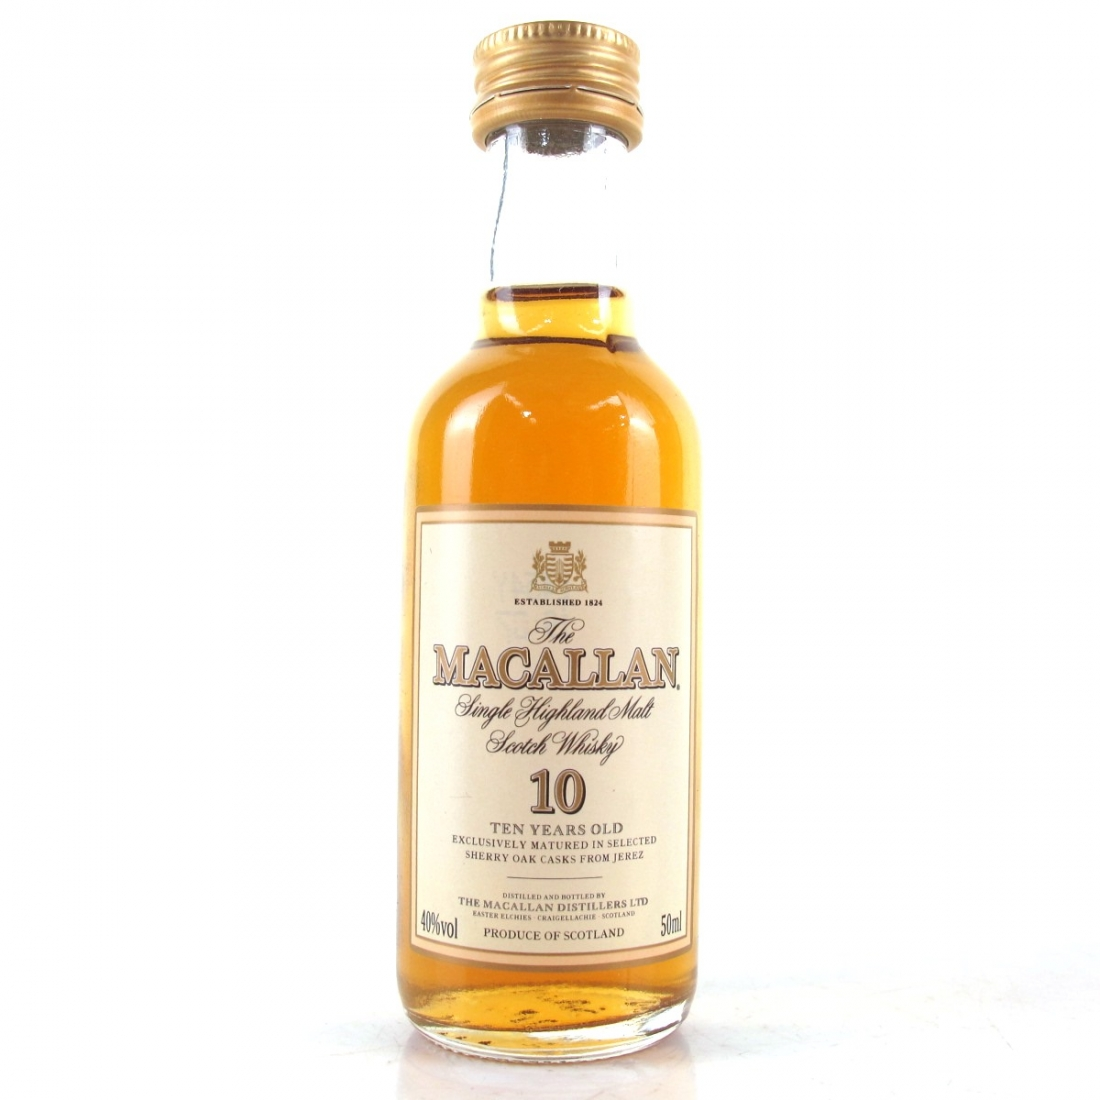 Macallan 10 Year Old Miniature 5cl / A Study of Albanian Shopping Malls